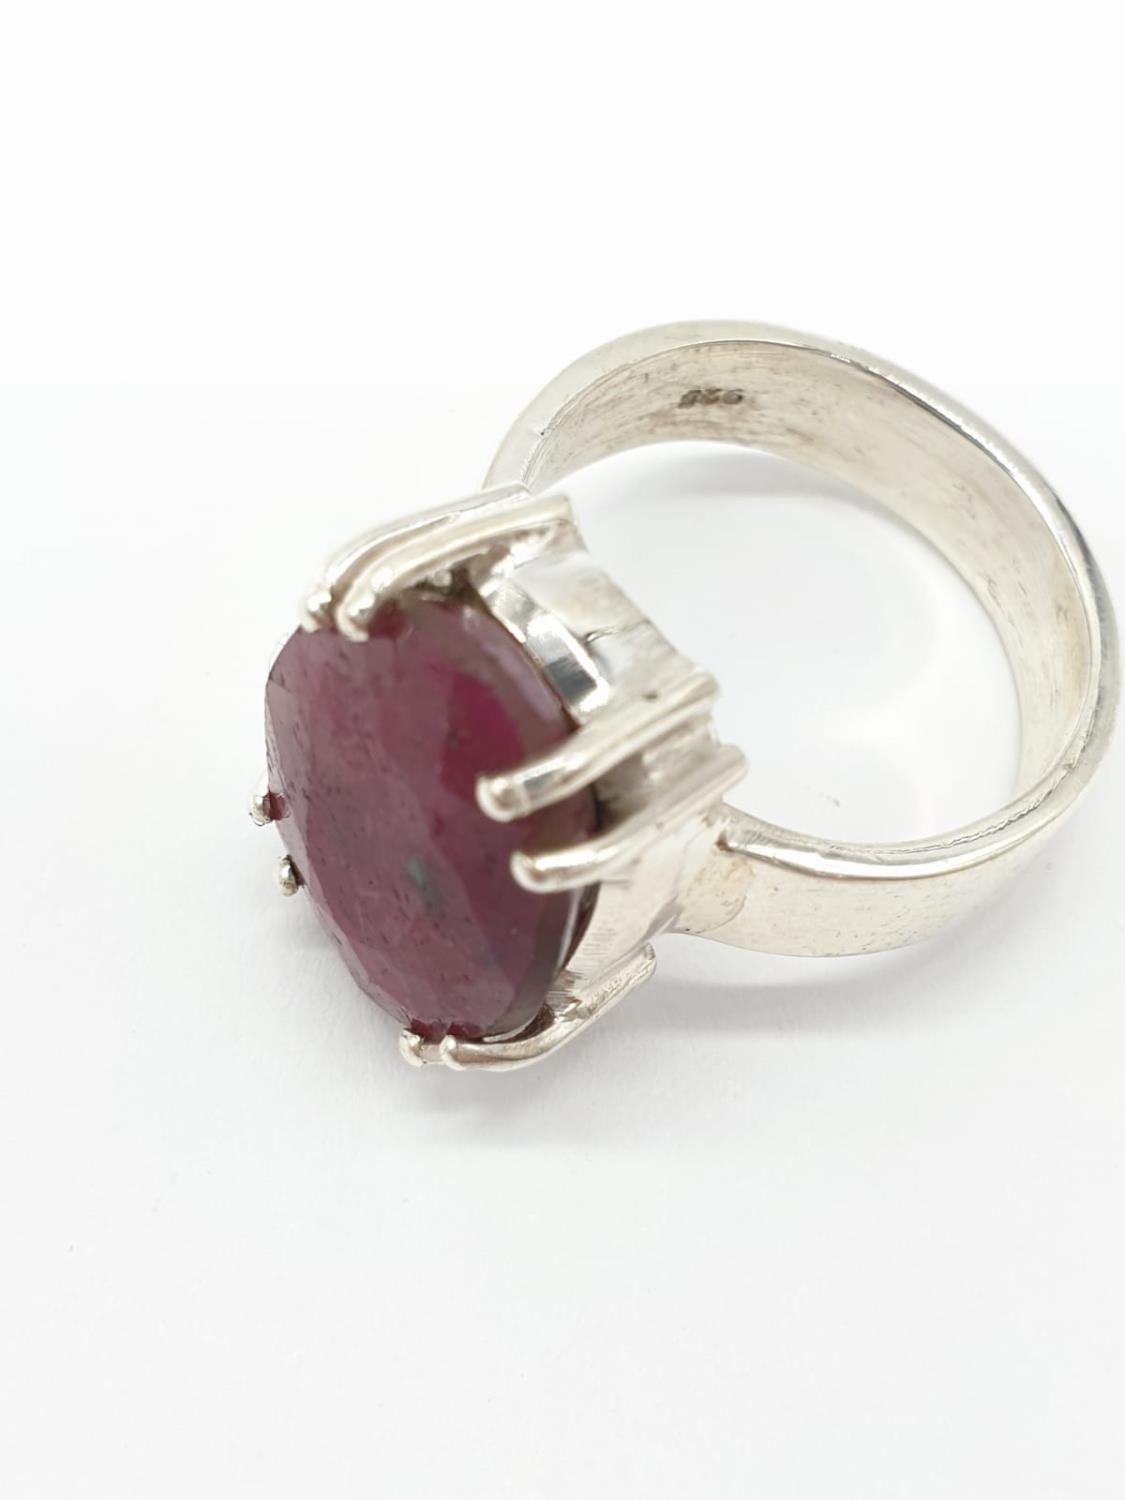 Dressed ruby silver N size ring - Image 3 of 4